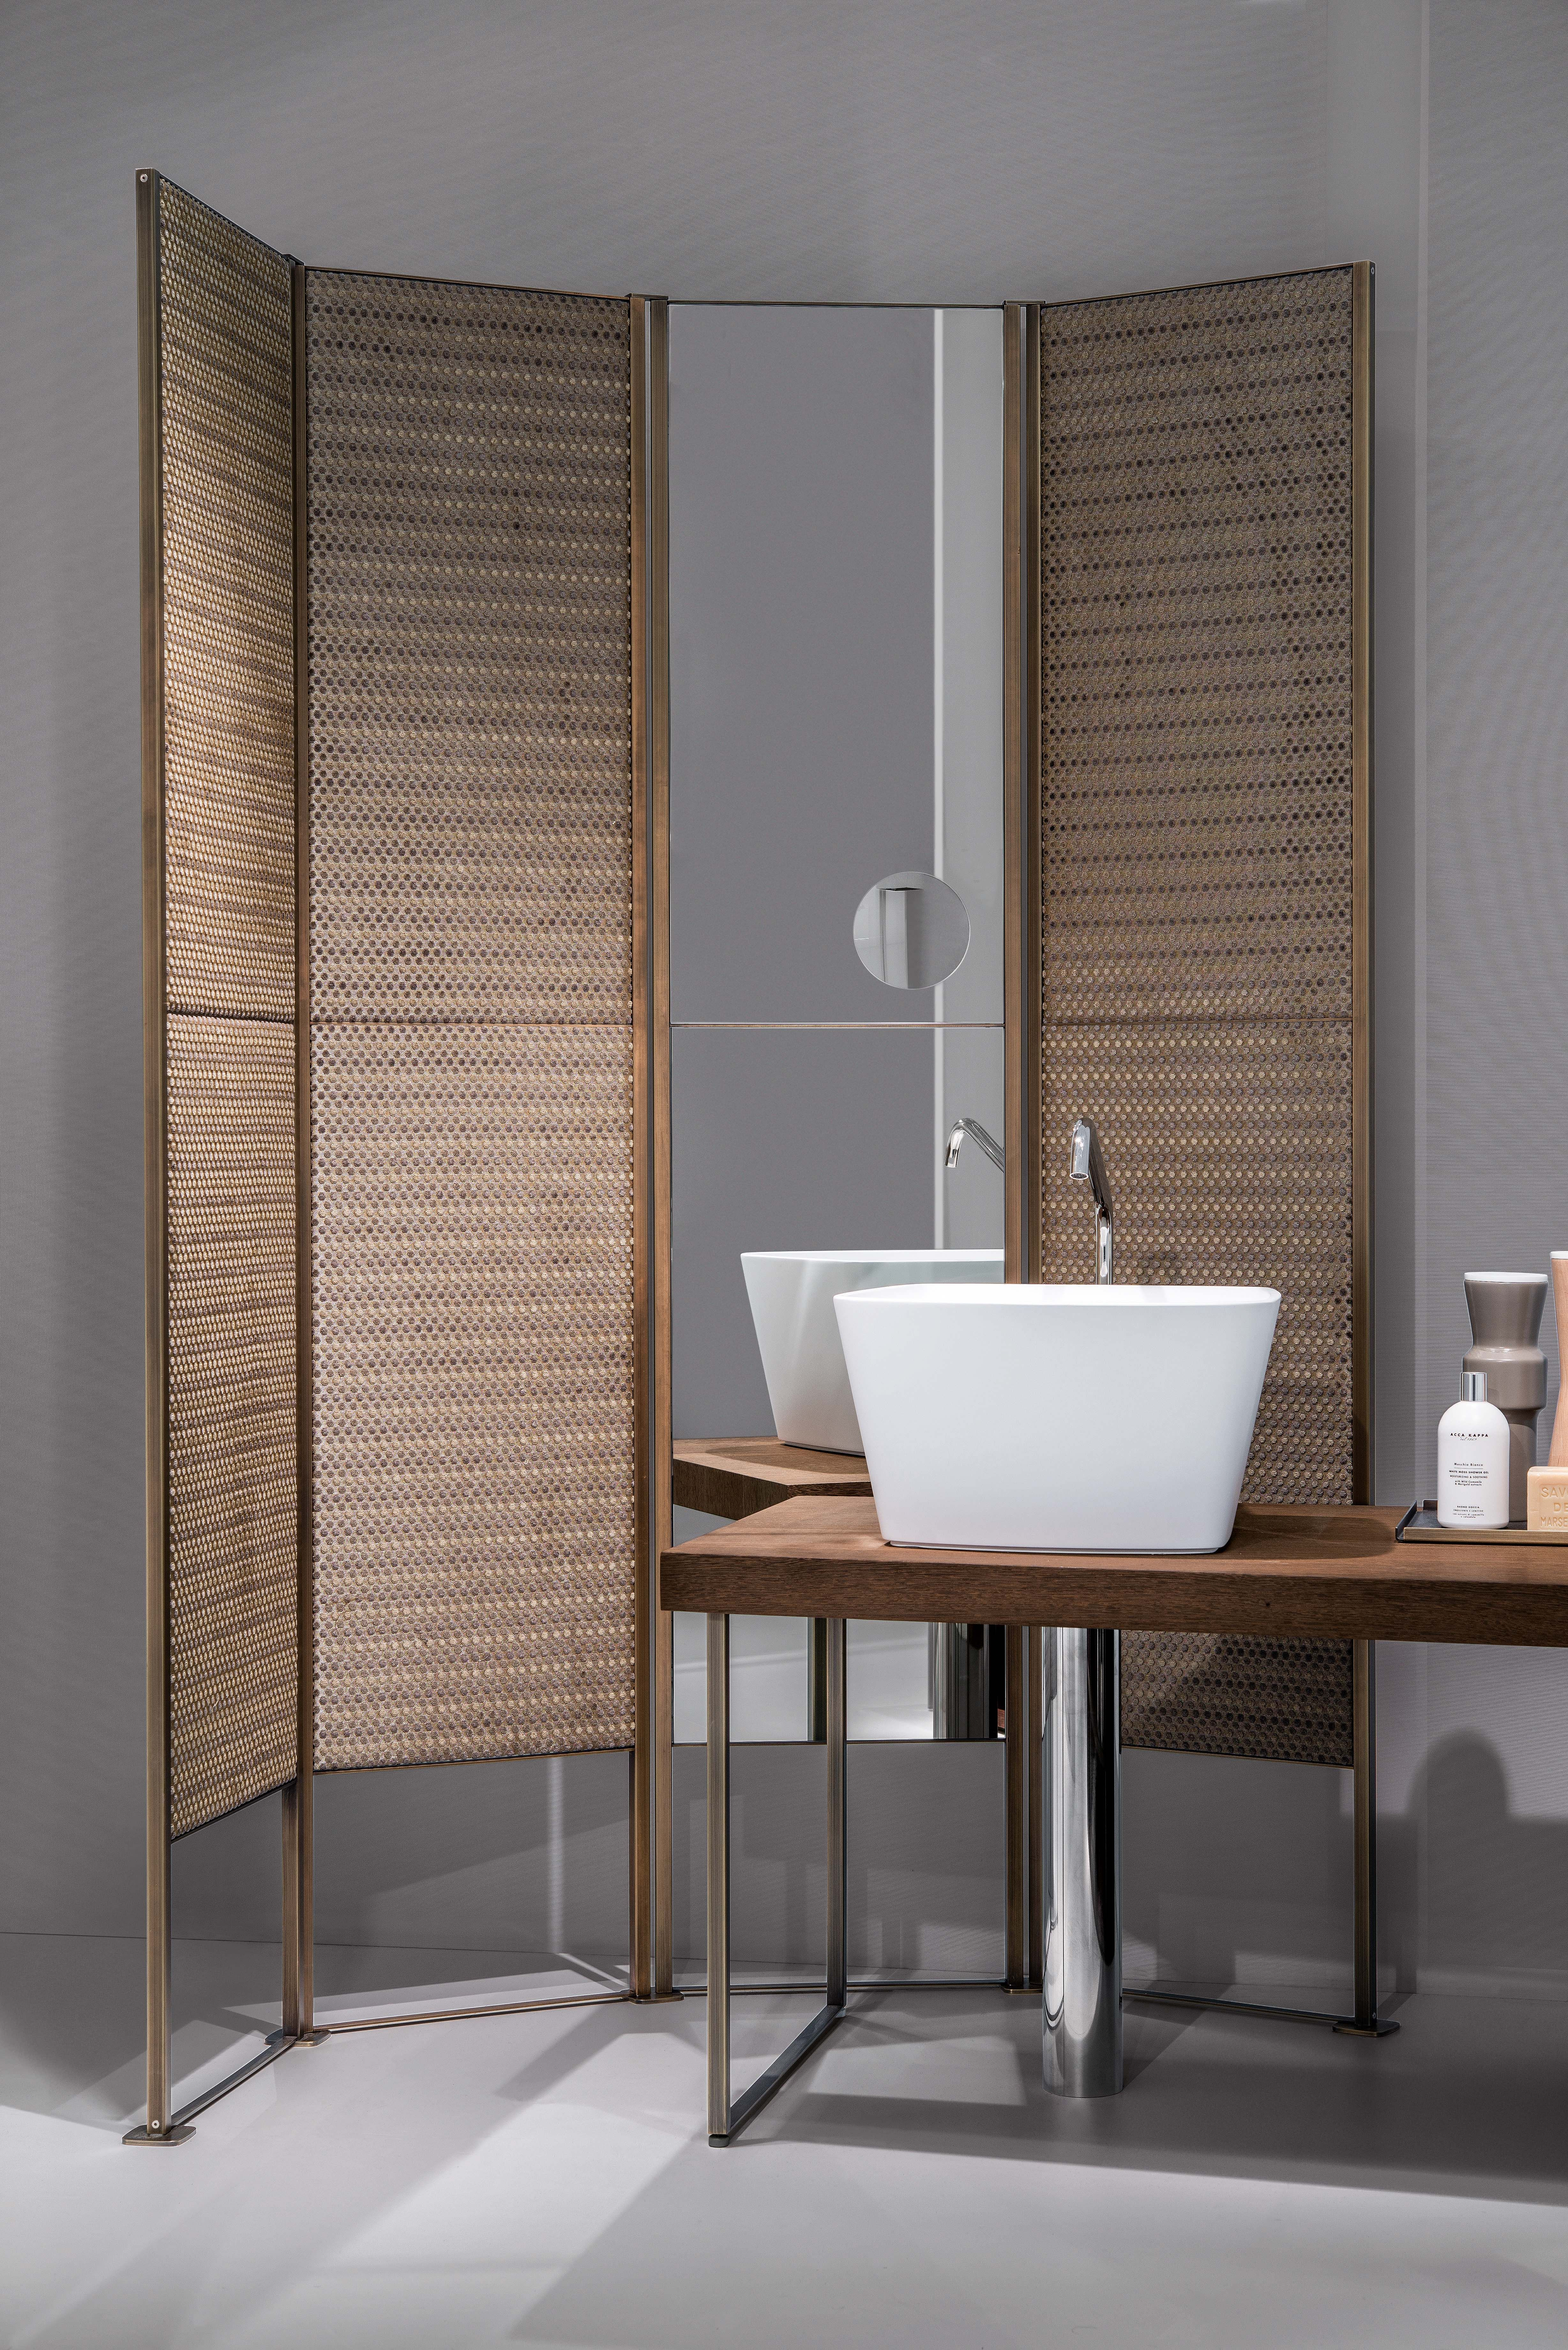 Inexpensive Room Separators Exit Coper: SHADE Is A Customizable Folding Screen Which Becomes An